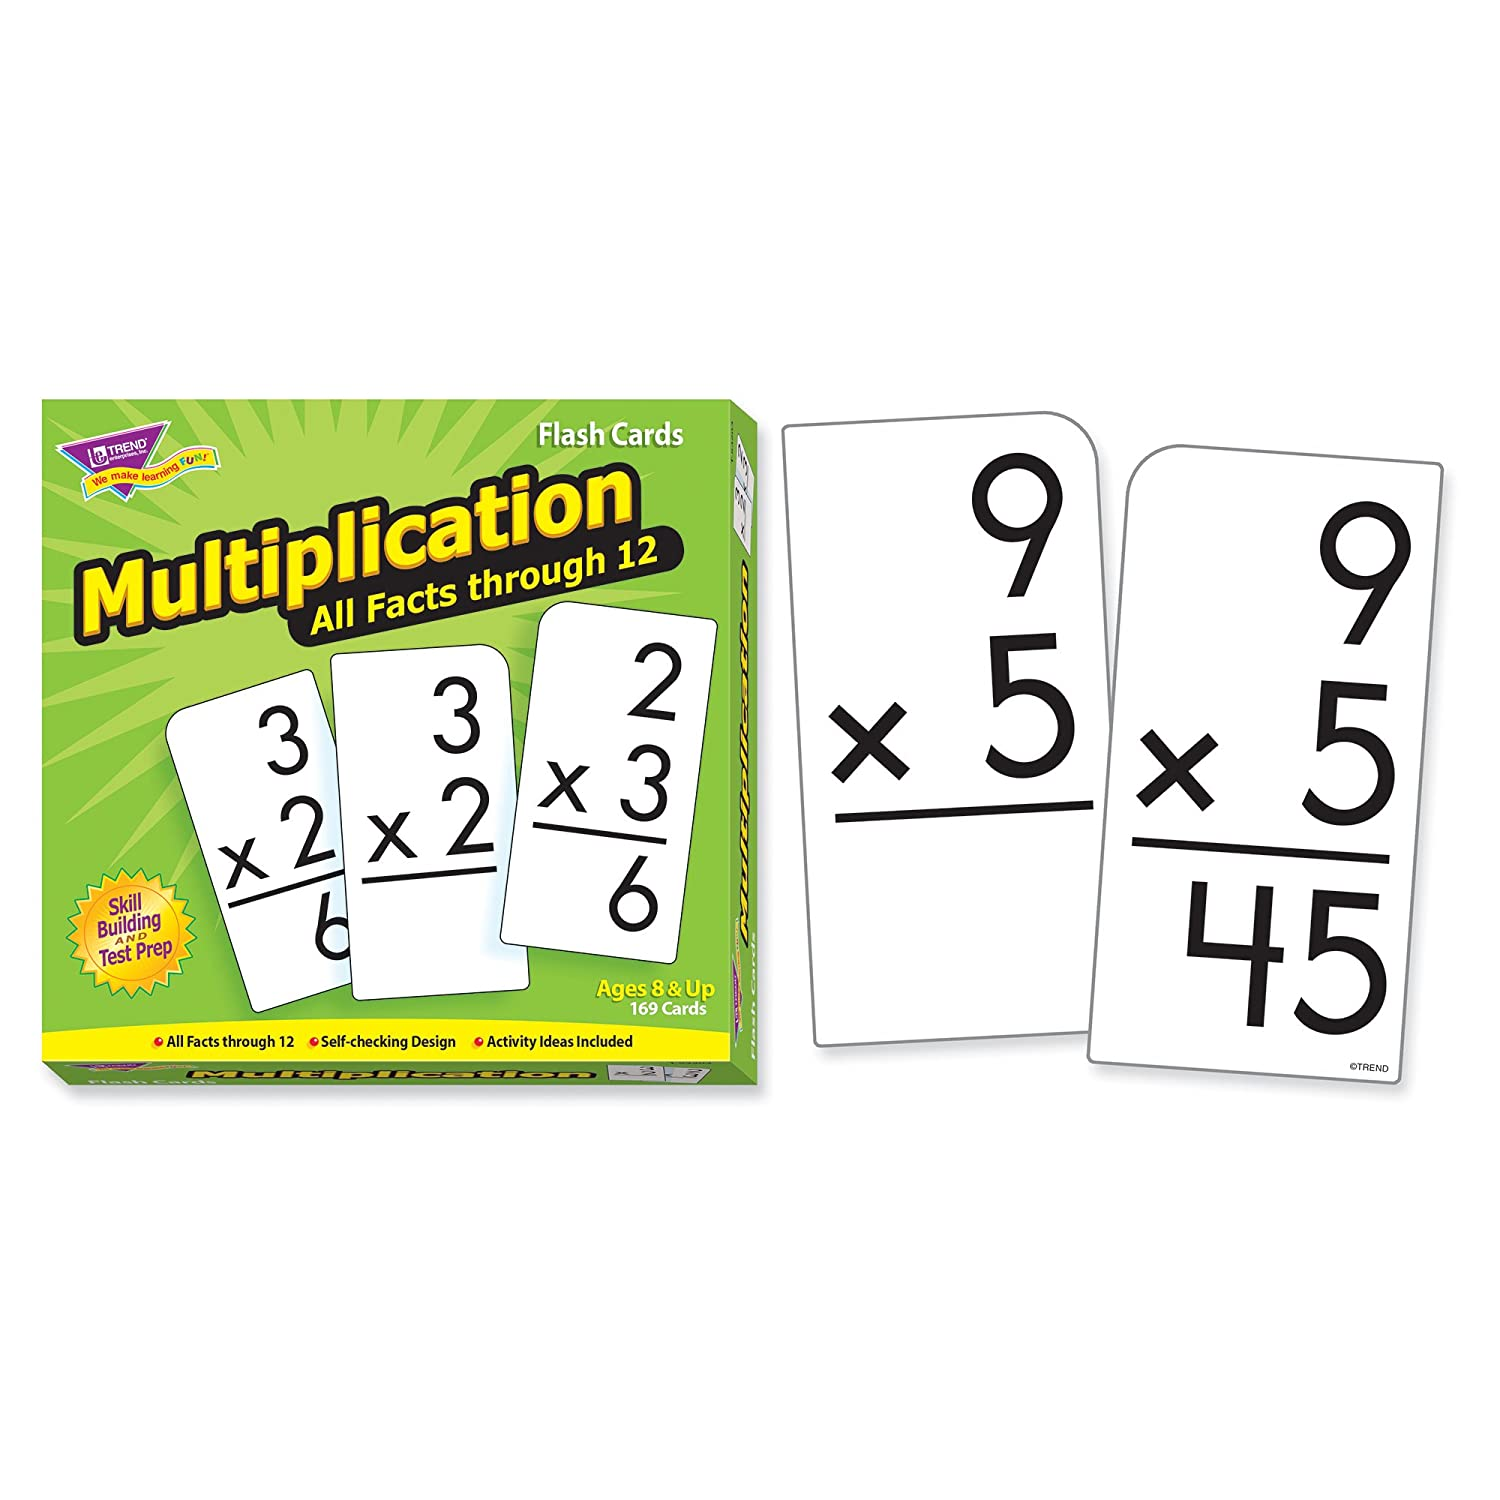 Worksheet Free Printable Multiplication Flash Cards 0-12 amazon com trend enterprises multiplication 0 12 flash cards all facts toys games